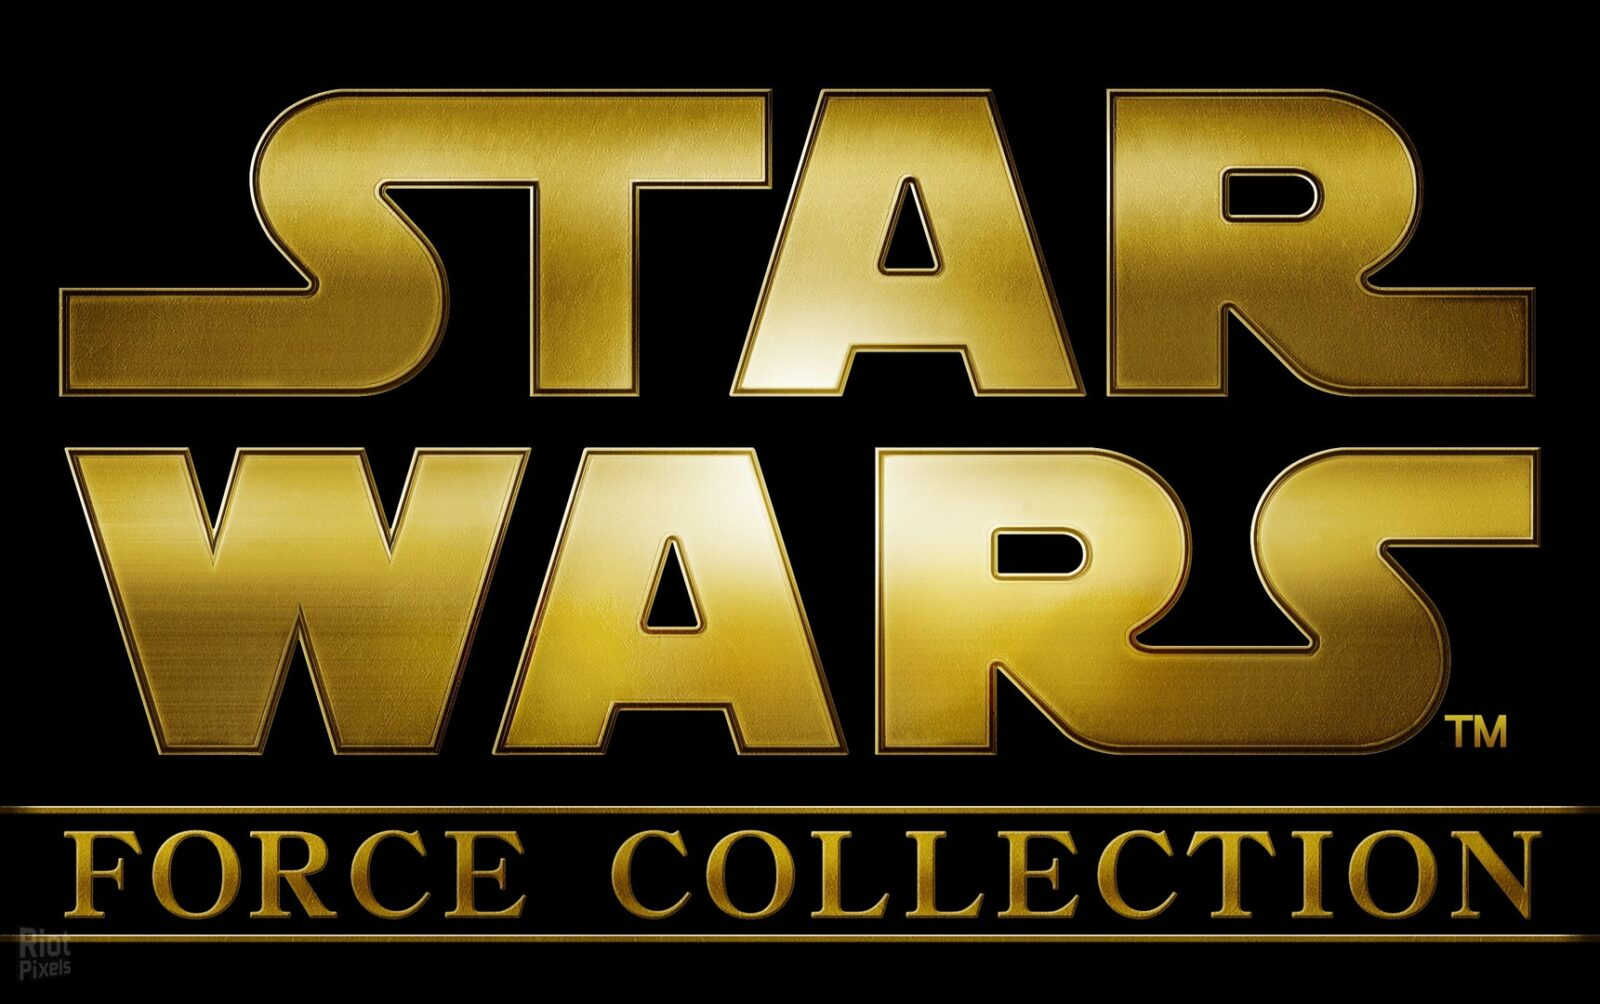 artwork.star-wars-force-collection.1721x1080.2013-08-21.6